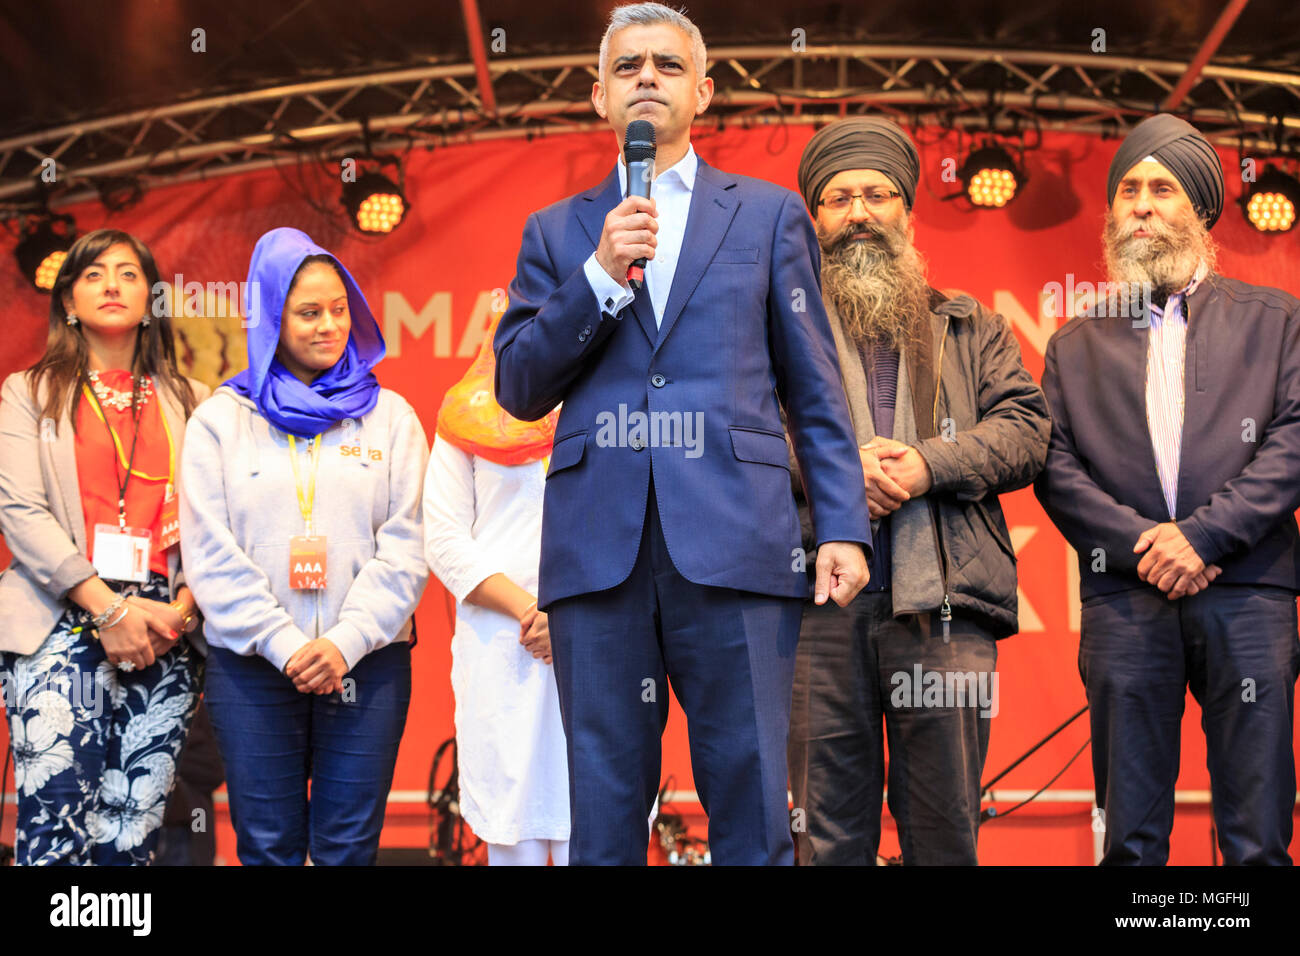 Trafalgar Square, London, 28th April 2018. The Mayor of London, Sadiq Khan, marks this year's Vaisakhi festival with a speech. Visitors and members of the Sikh and Punjabi community enjoy the popular Vaisakhi festival in Trafalgar Square, which features cultural performances, music, dance and stalls in the square. Vaisakhi festival is a celebration of Sikh and Punjabi tradition, heritage and culture, commemorating the birth of the Khalsa (the inner core of the Sikh faith) over 300 years ago. Credit: Imageplotter News and Sports/Alamy Live News - Stock Image